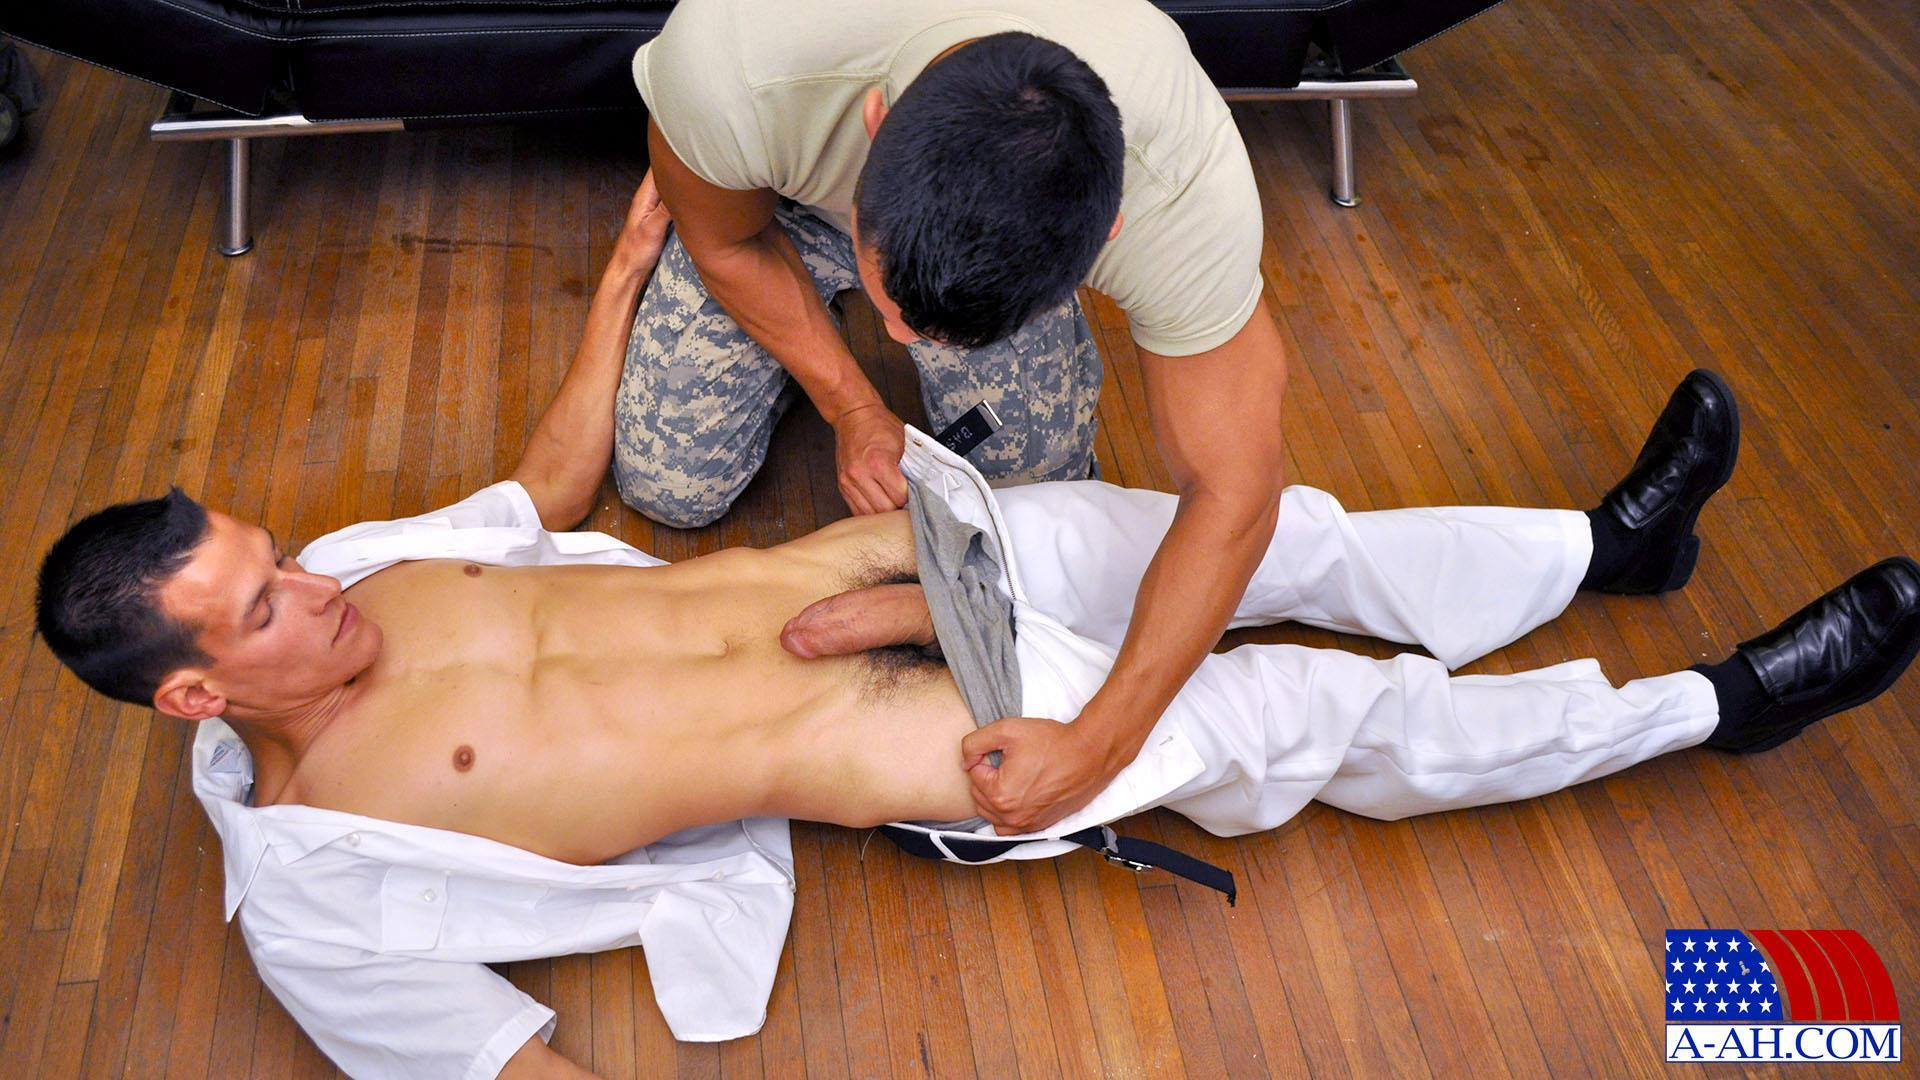 All-American-Heroes-Navy-Petty-Officer-Eddy-Fucking-Army-Private-Seth-Big-Cock-Amateur-Gay-Porn-02 Navy Petty Officer Fucking An Army Private With His Big Cock